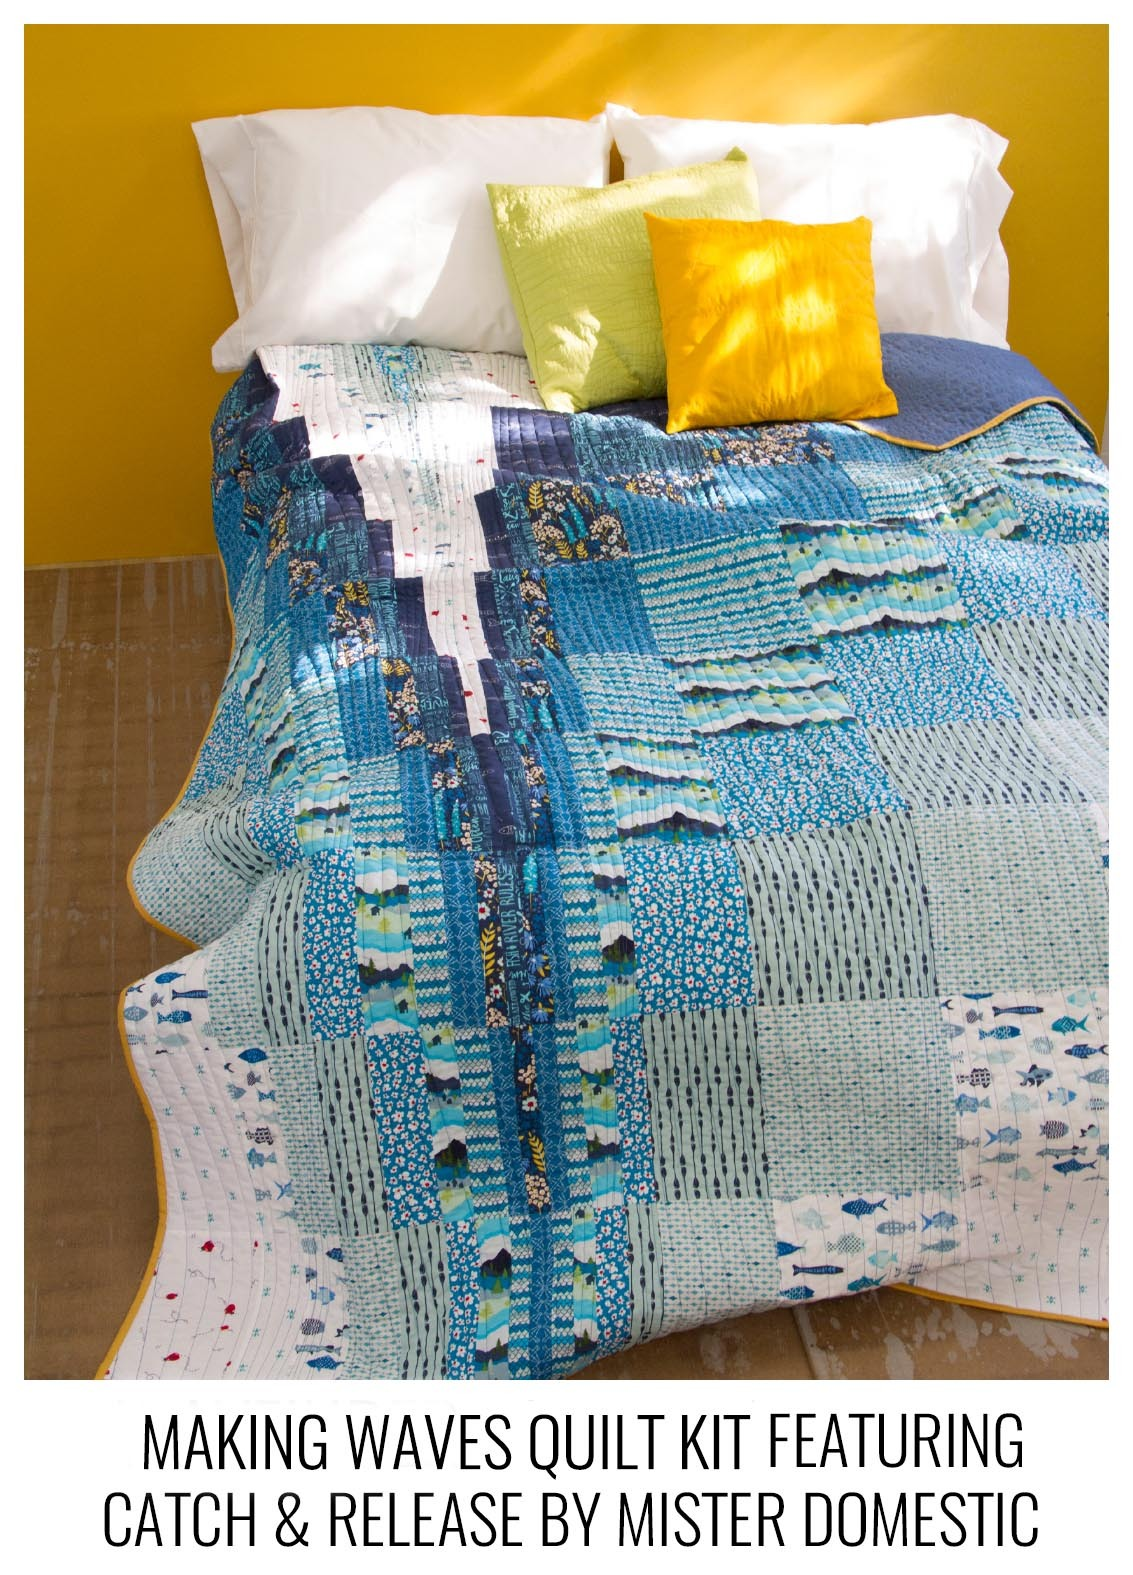 Catch and Release Making Waves Quilt Kit